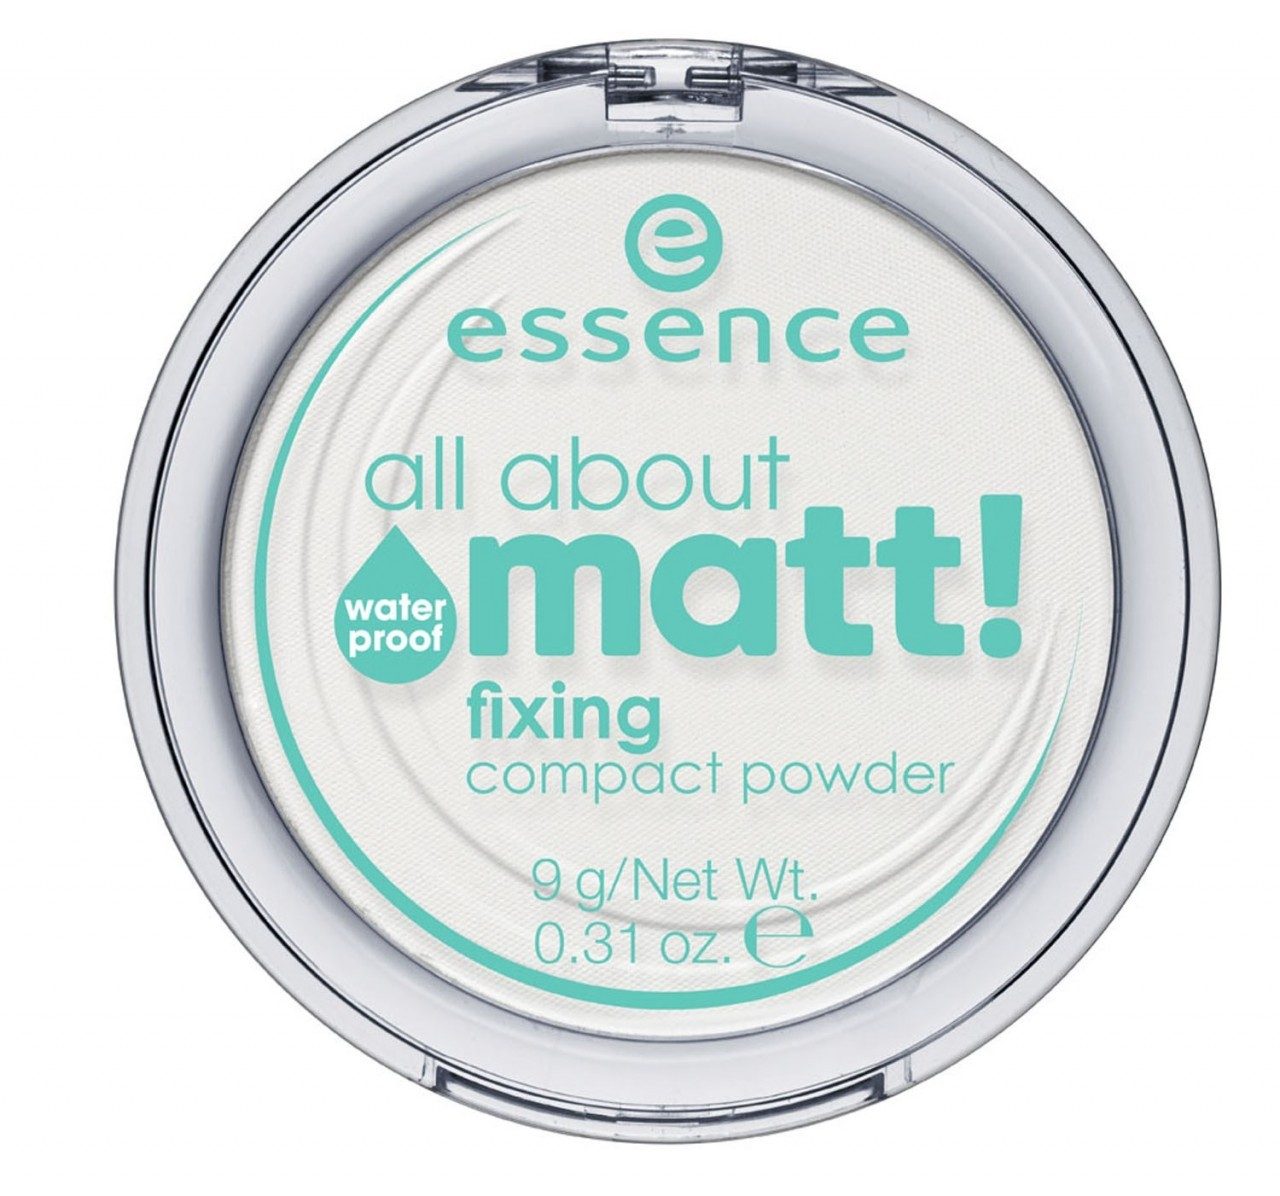 essence cosmetics - waterproof fixing compact powder